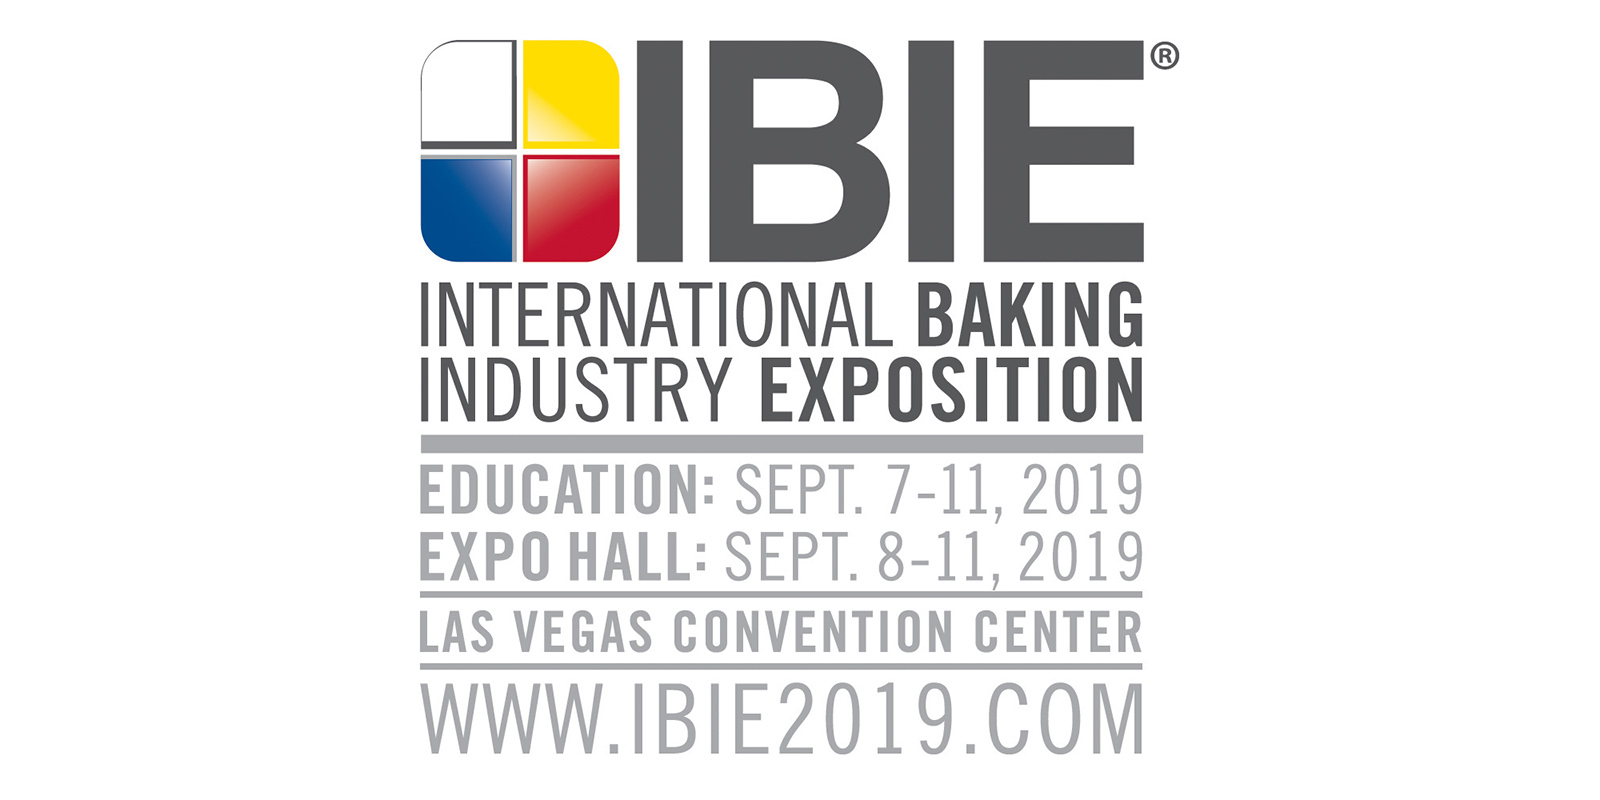 Visit EyePro at @ IBIE 2019 in Las Vegas – Booth #7445